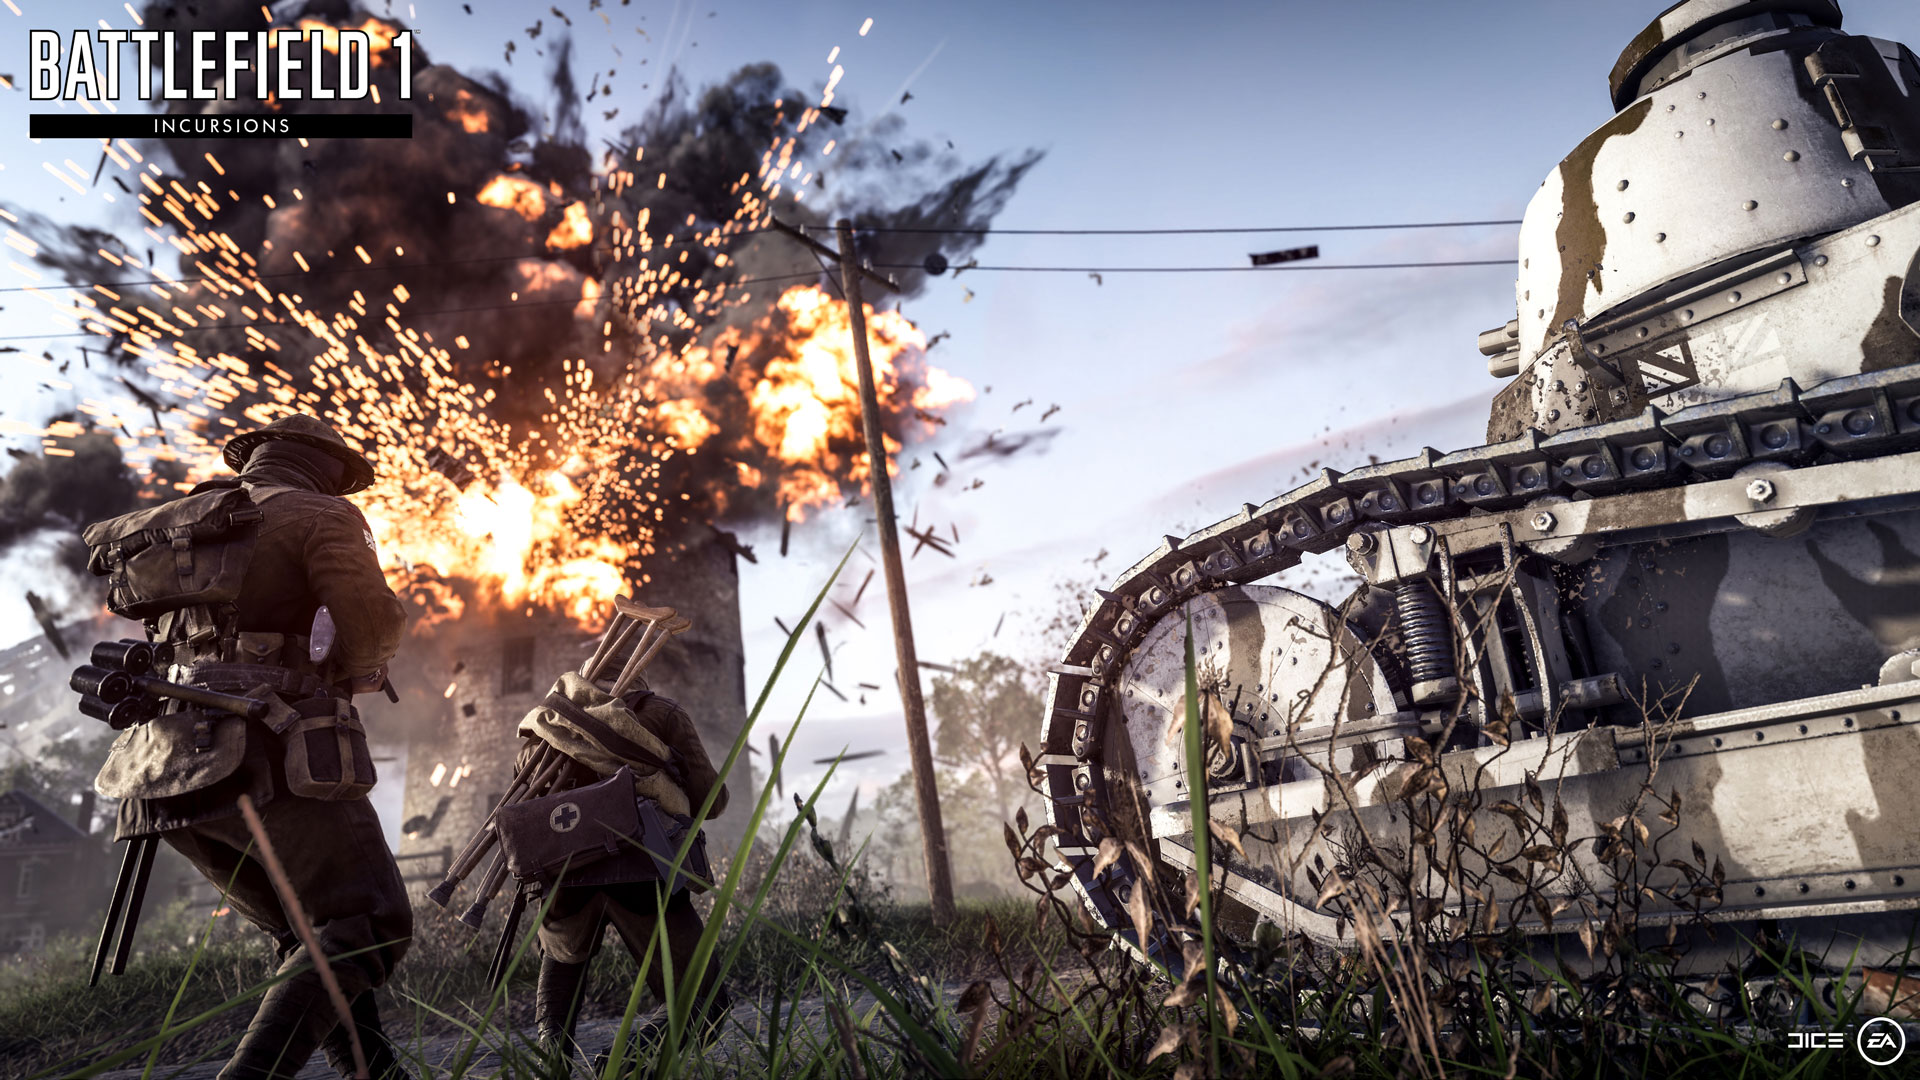 Image result for Battlefield 1 'Incursions'